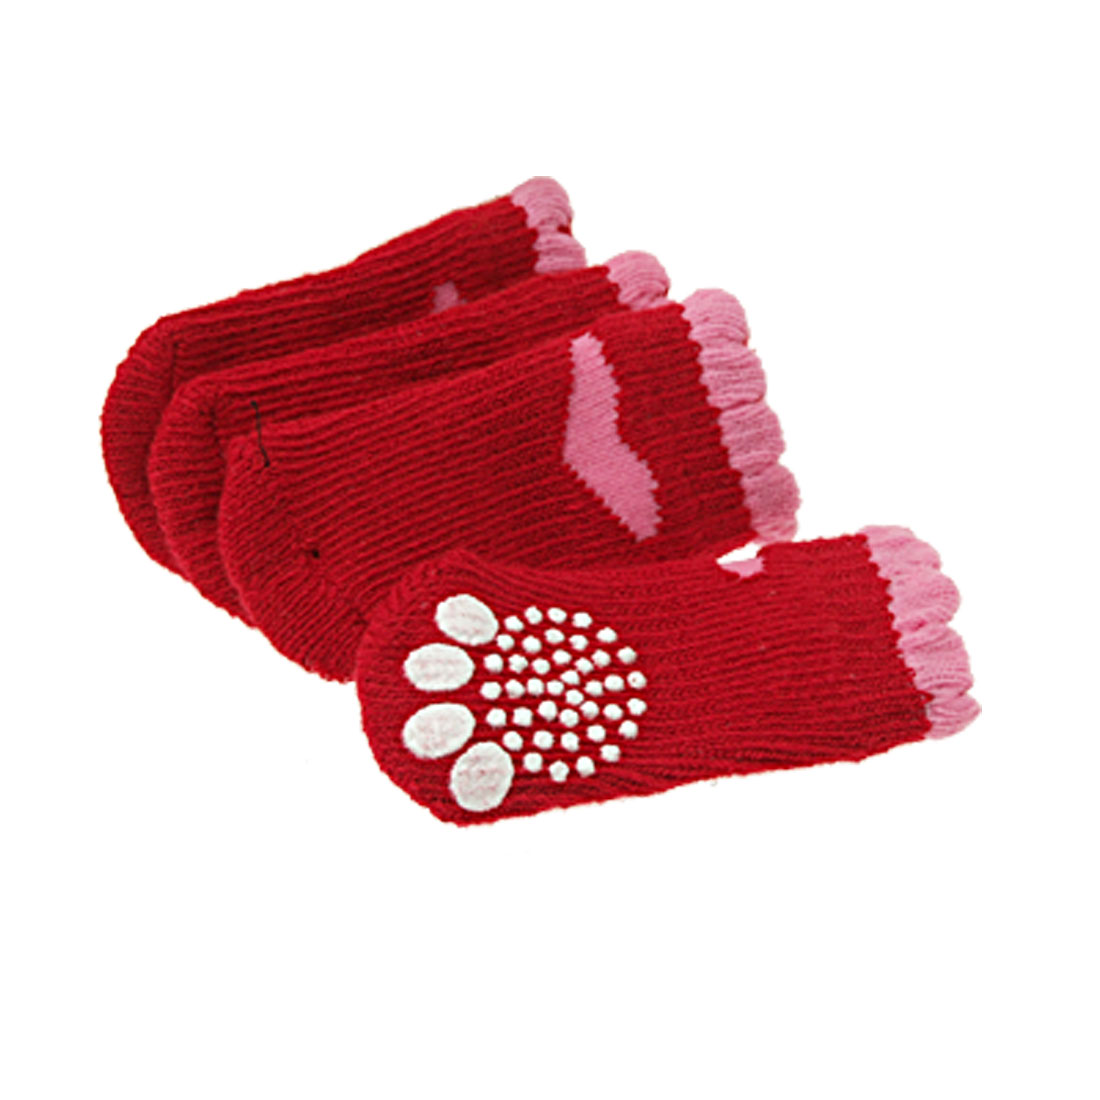 L7 x W3cm Red Pink Nonskid Pet Dog Warm Socks